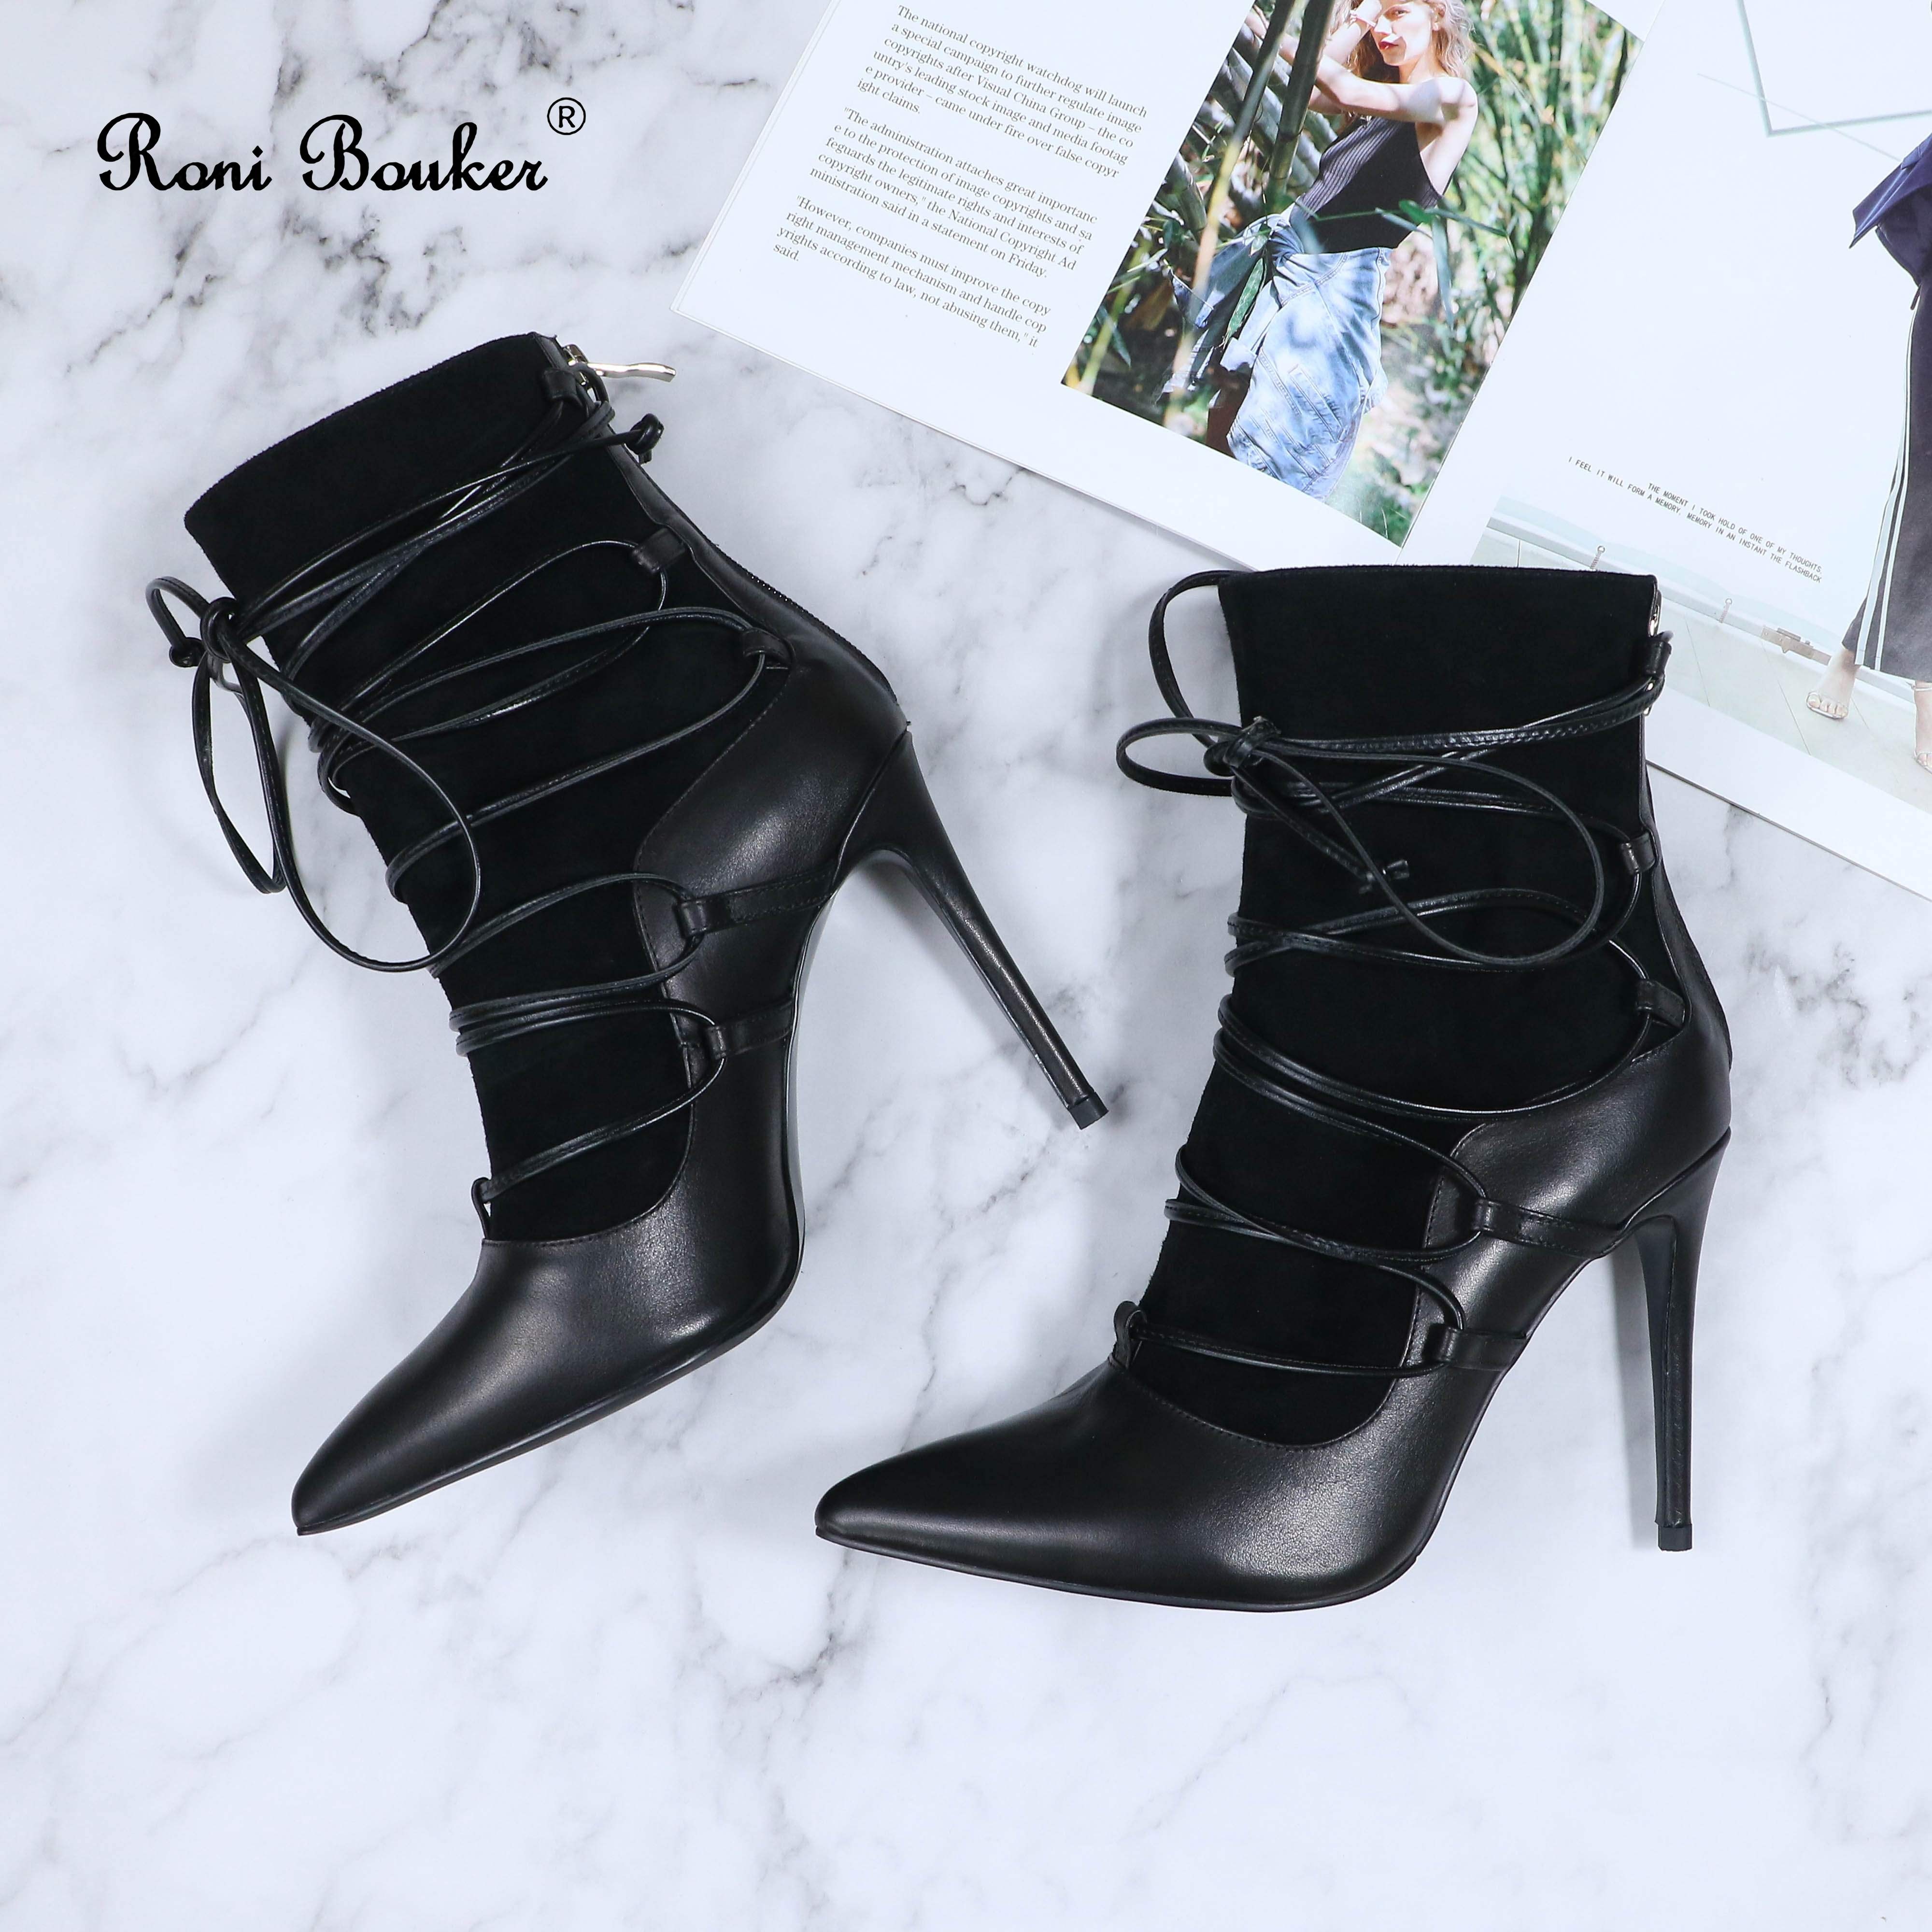 Roni Bouker Fashion Designer Shoes Women Genuine Leather Handmade Booties Woman Lace Up Ankle Boots Lady Black High Heels - 4